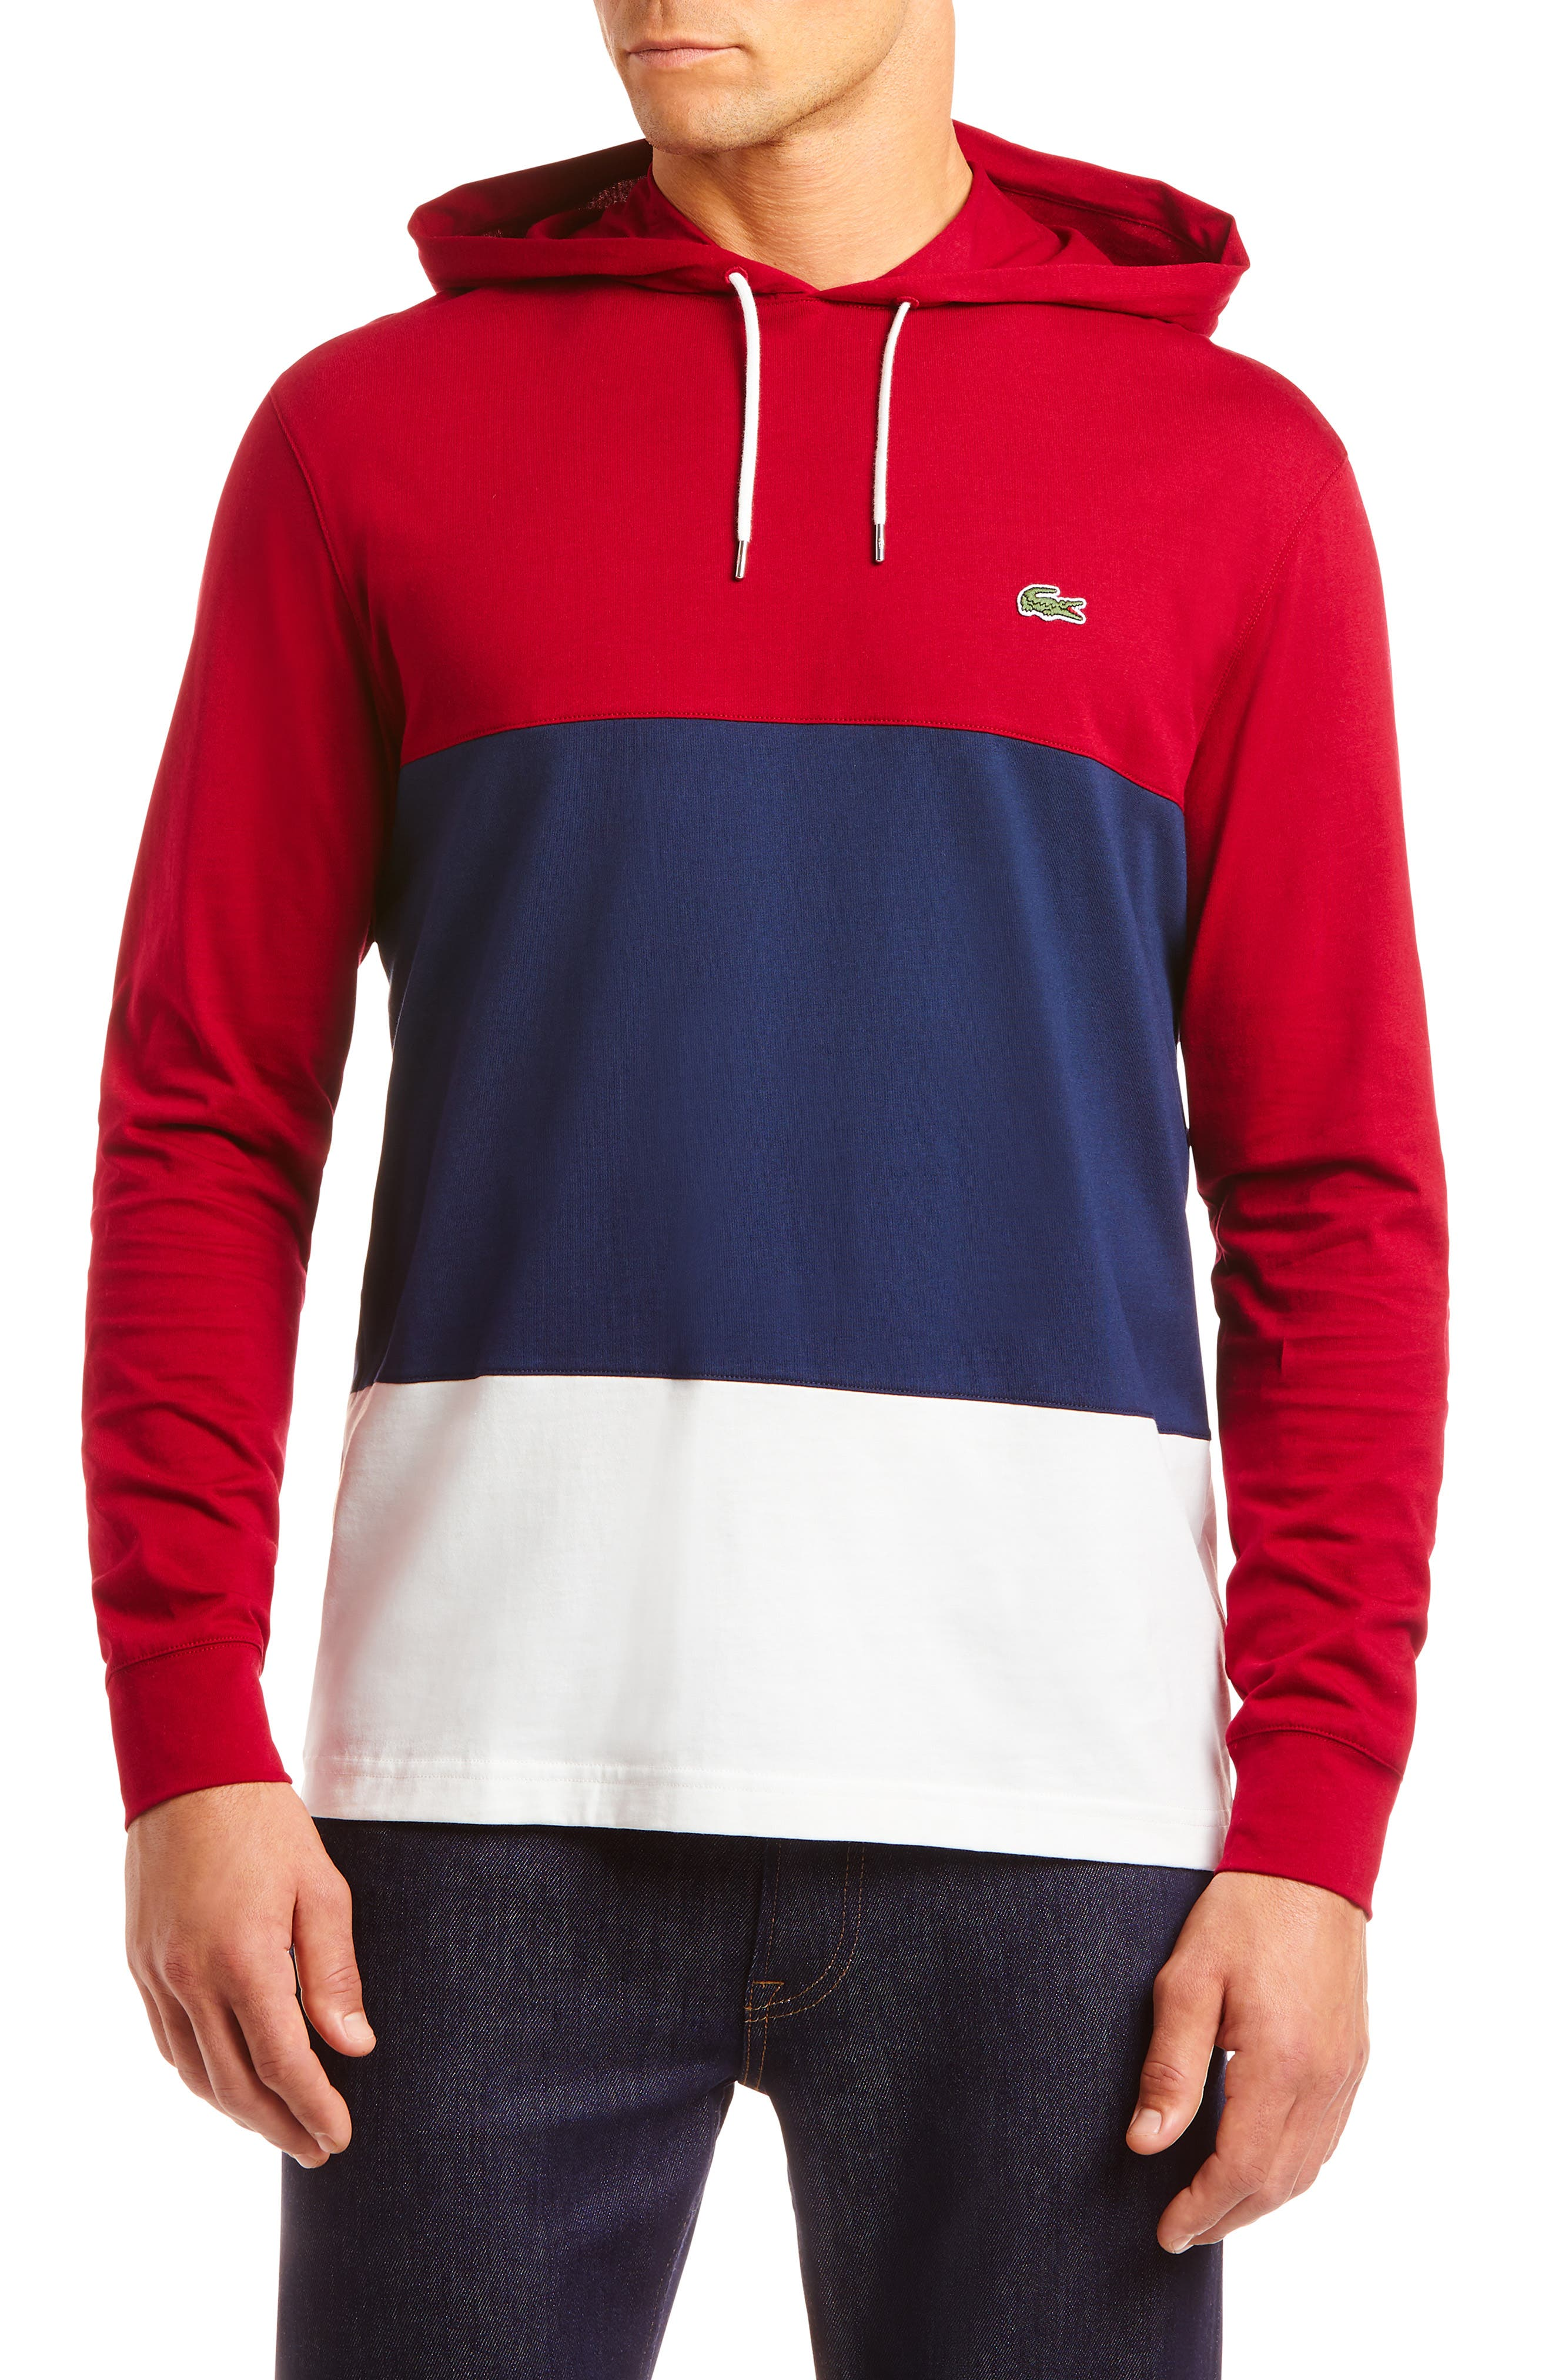 Lacoste Tops Colorblock Pullover Hoodie